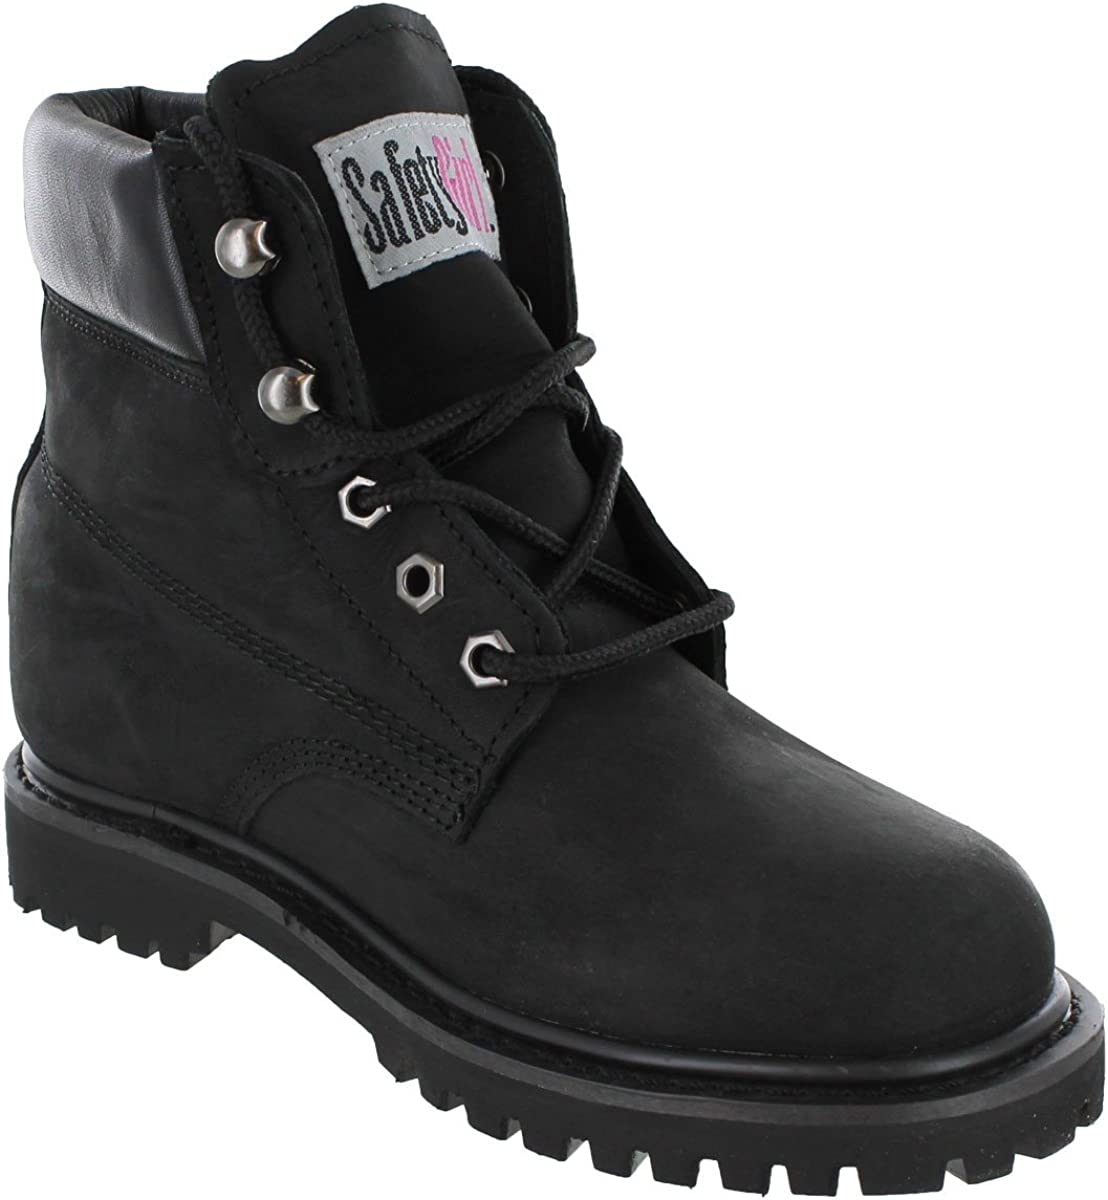 Safety Girl II Soft Toe Waterproof Womens Work Boots - Black